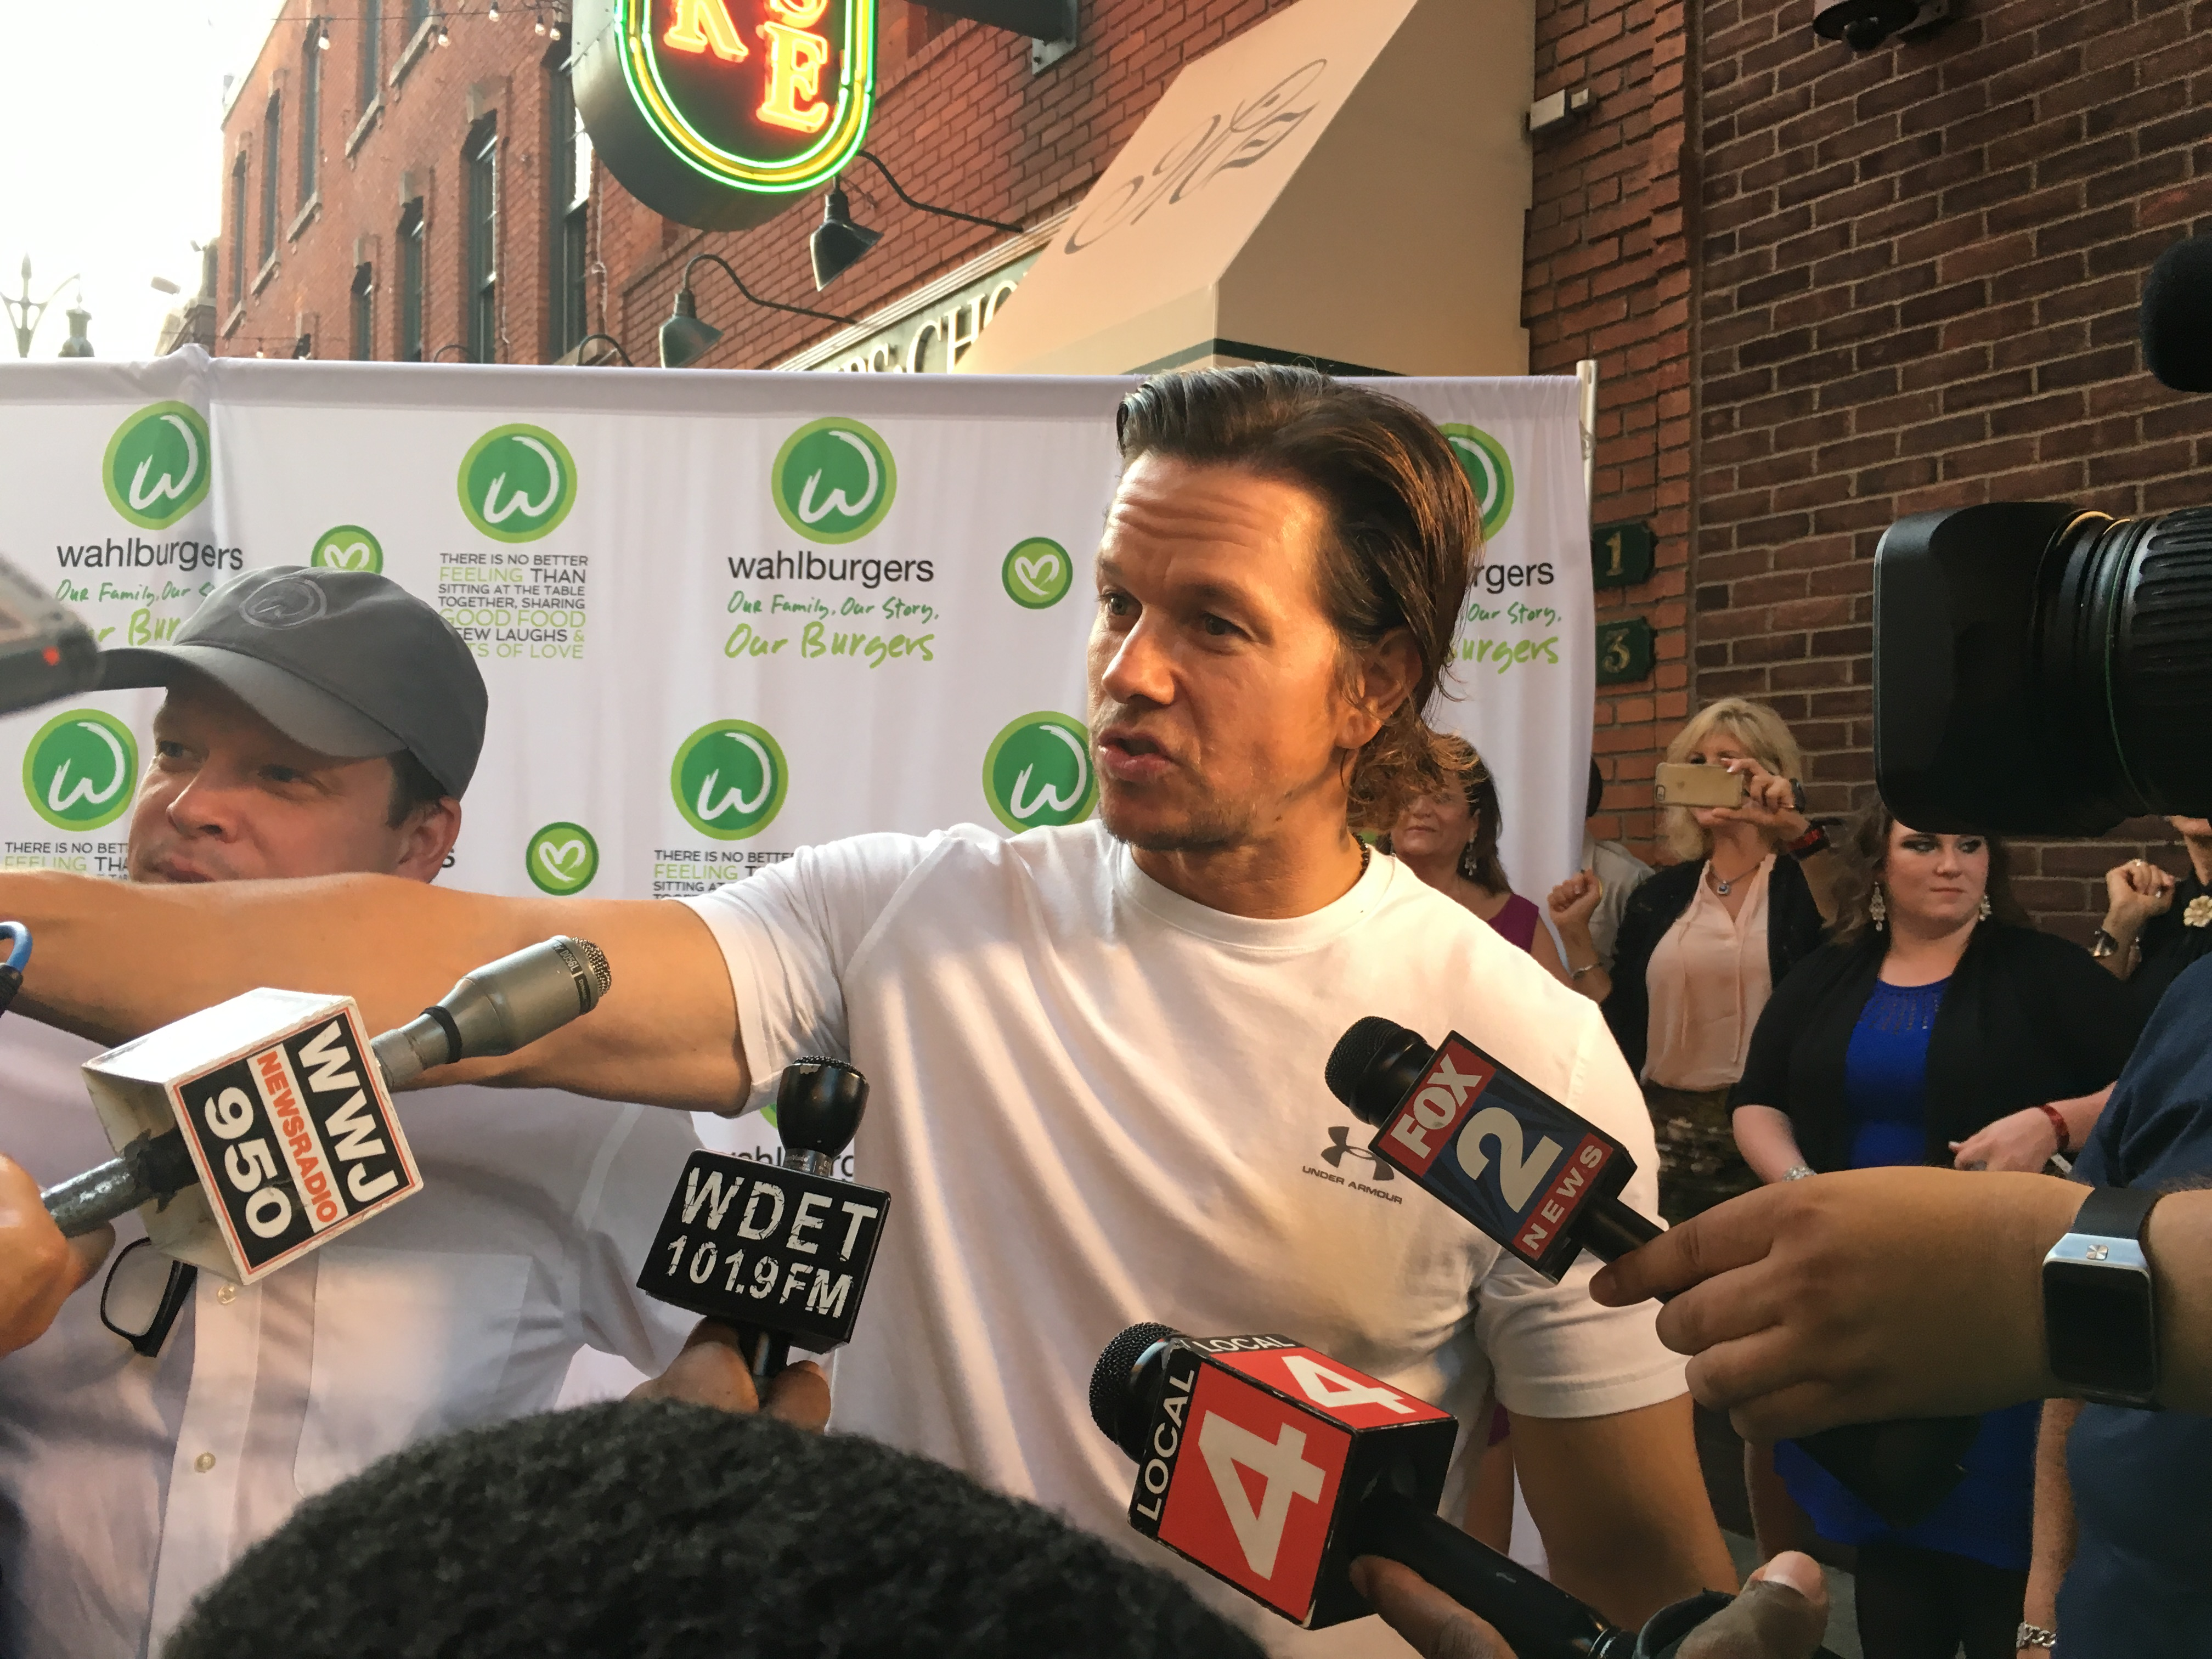 Mark Wahlberg next to chef Paul Wahlberg.